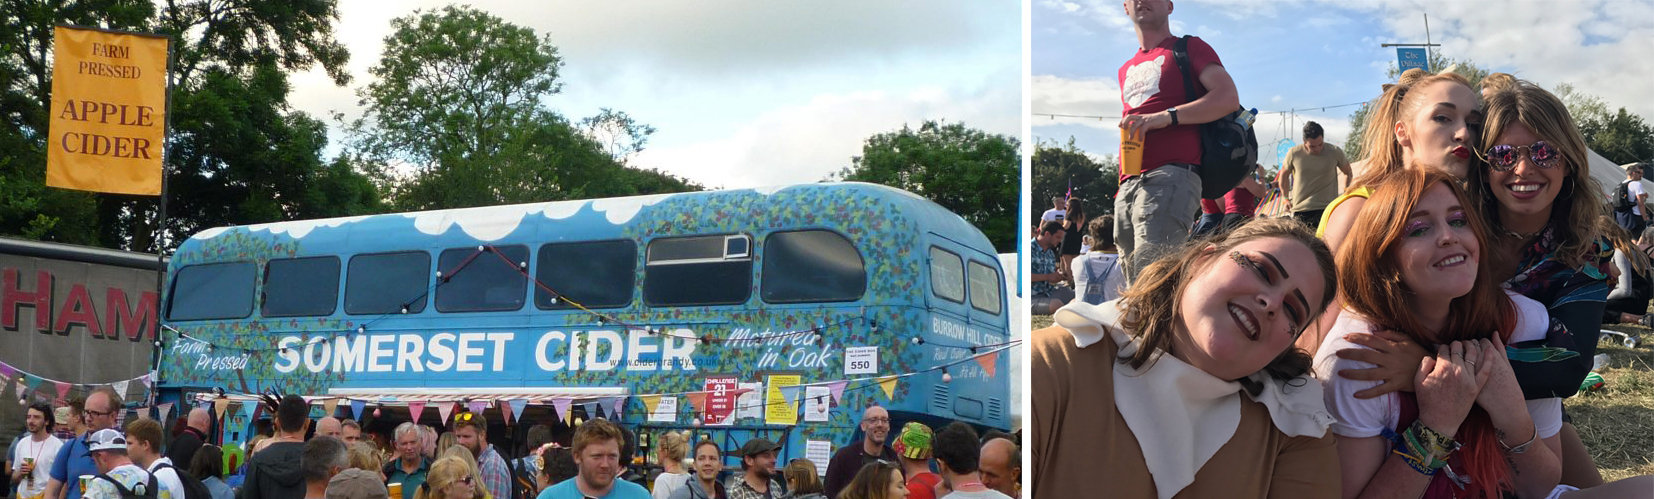 The busy Somerset Cider bus